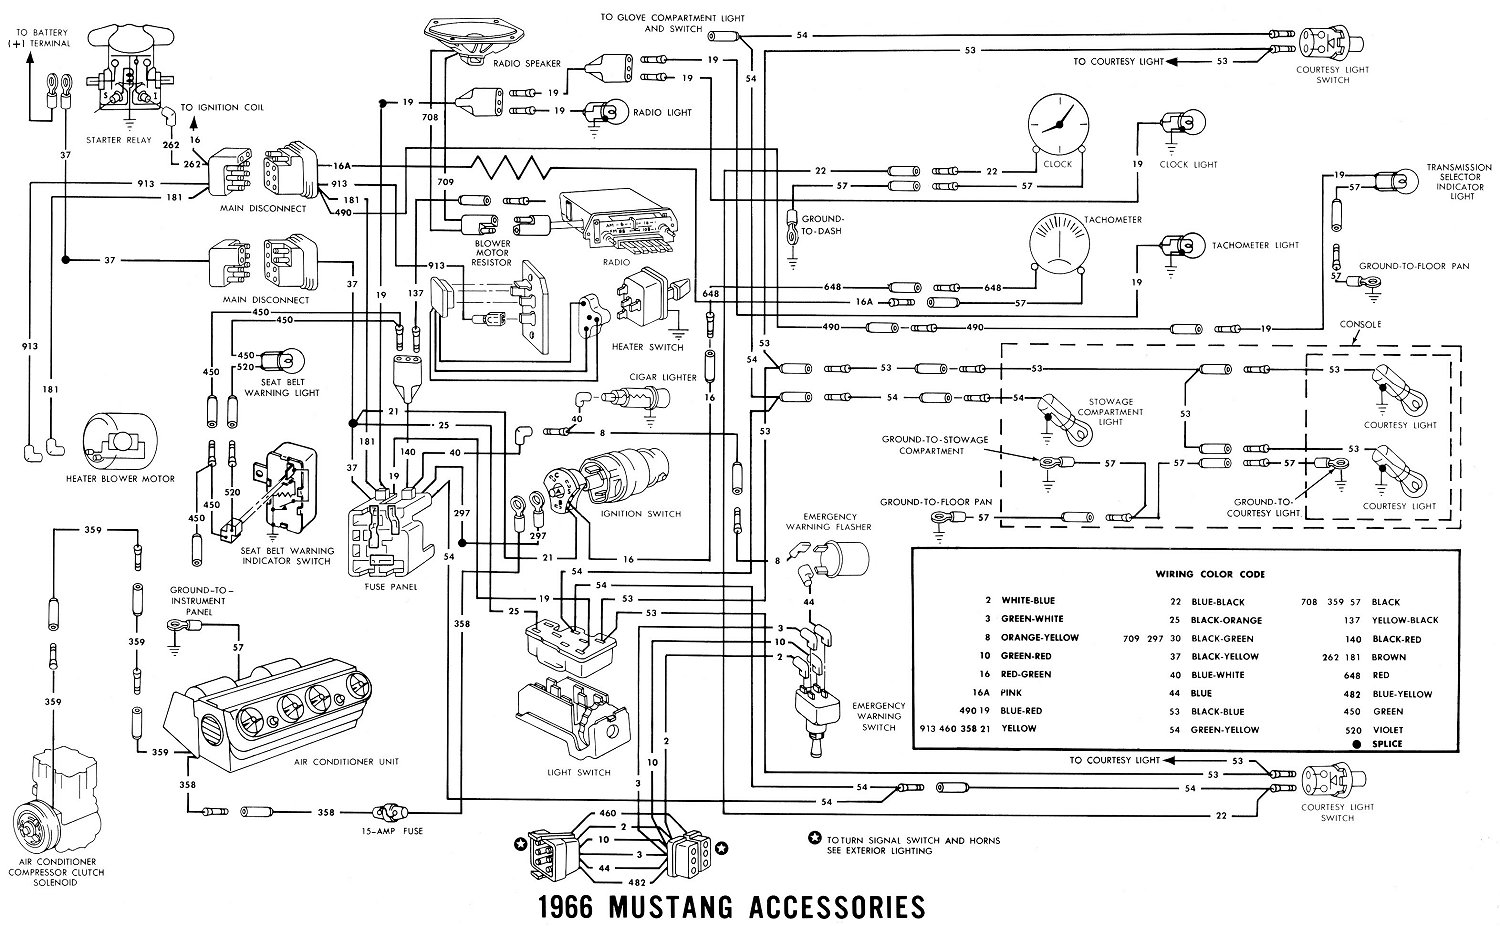 1967 mustang radio wiring diagram electrical work wiring diagram \u2022 1992 mustang steering column wiring diagram 1966 mustang gauge wiring diagram wire center u2022 rh linxglobal co 1967 chevy truck instrument panel wiring diagram 1967 mustang steering column diagram